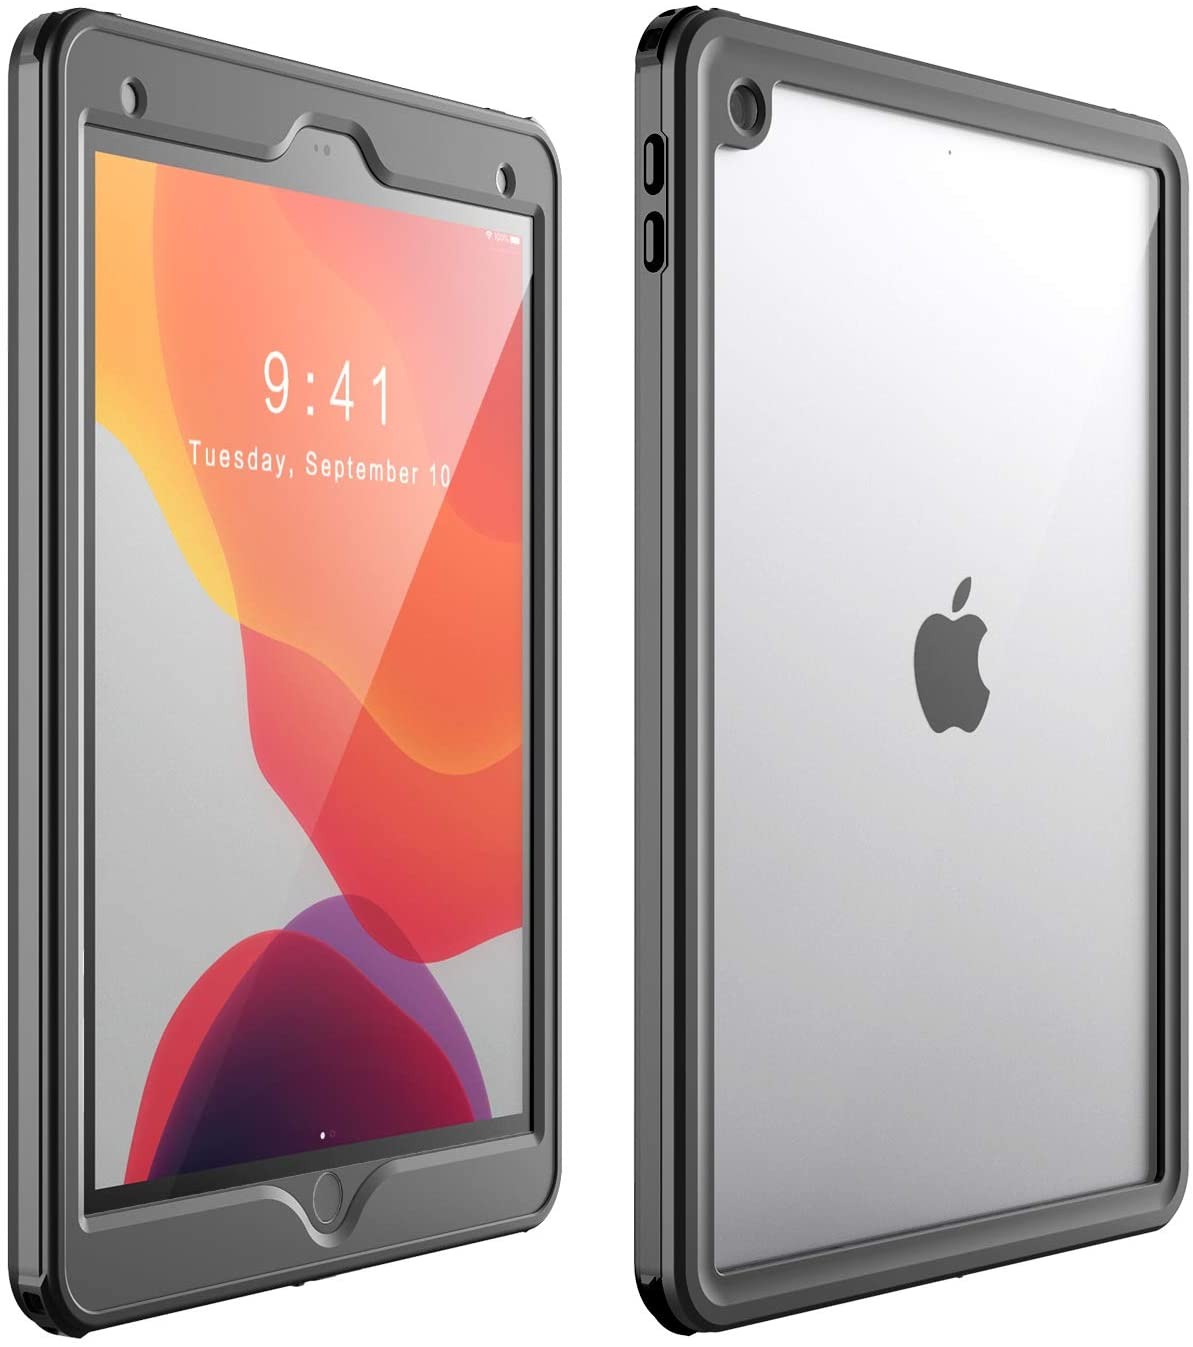 Waterproof Protective Case with Built-in Screen Protector Shock-Absorbing Bumper Dustproof Submersible Full-Body Case for iPad 10.2 inch